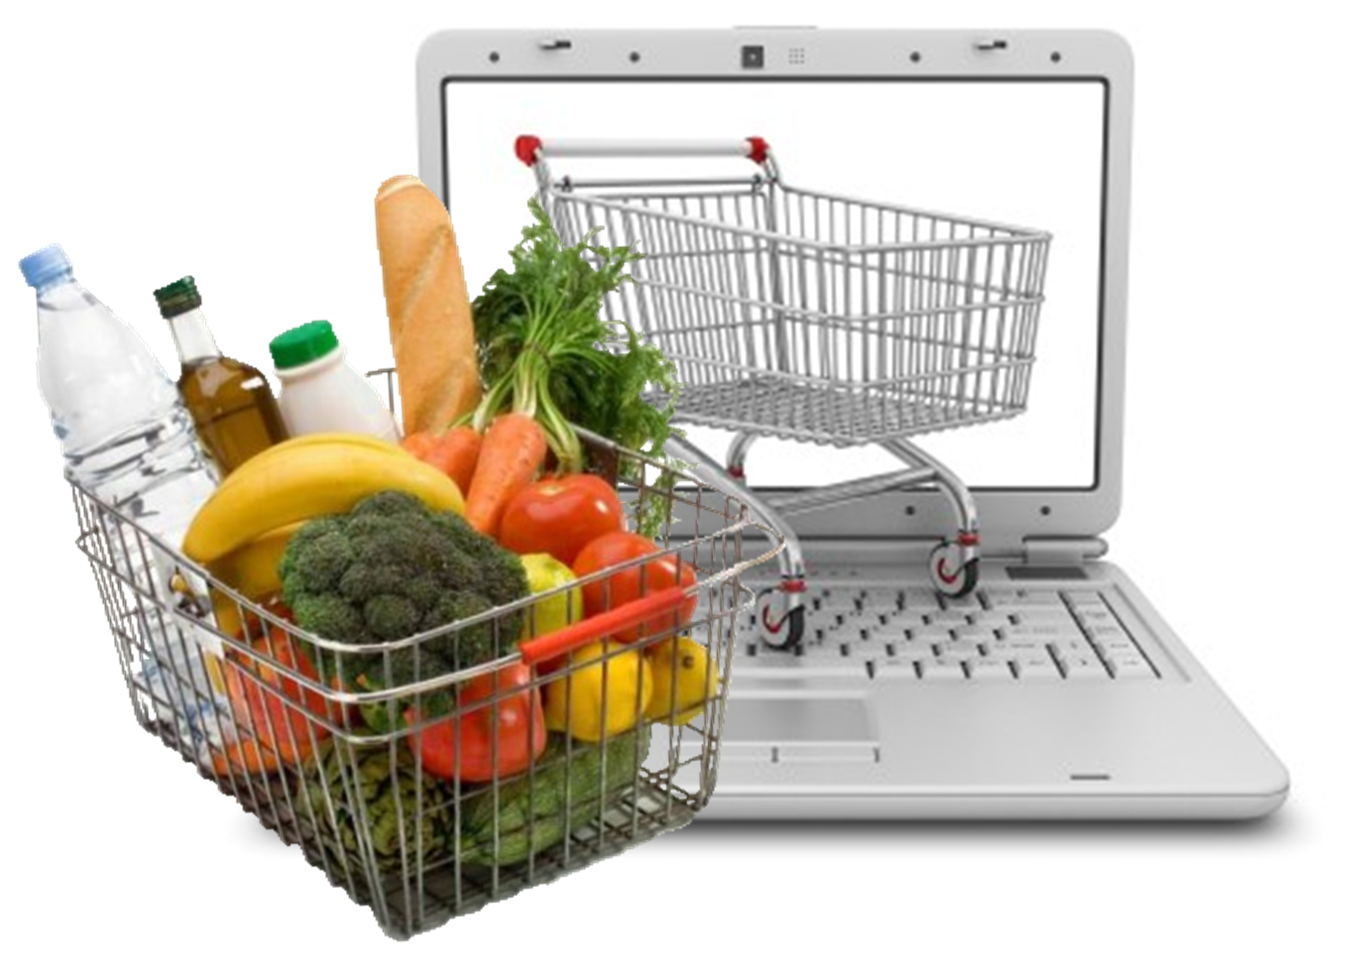 Online grocery shopping to increase this year